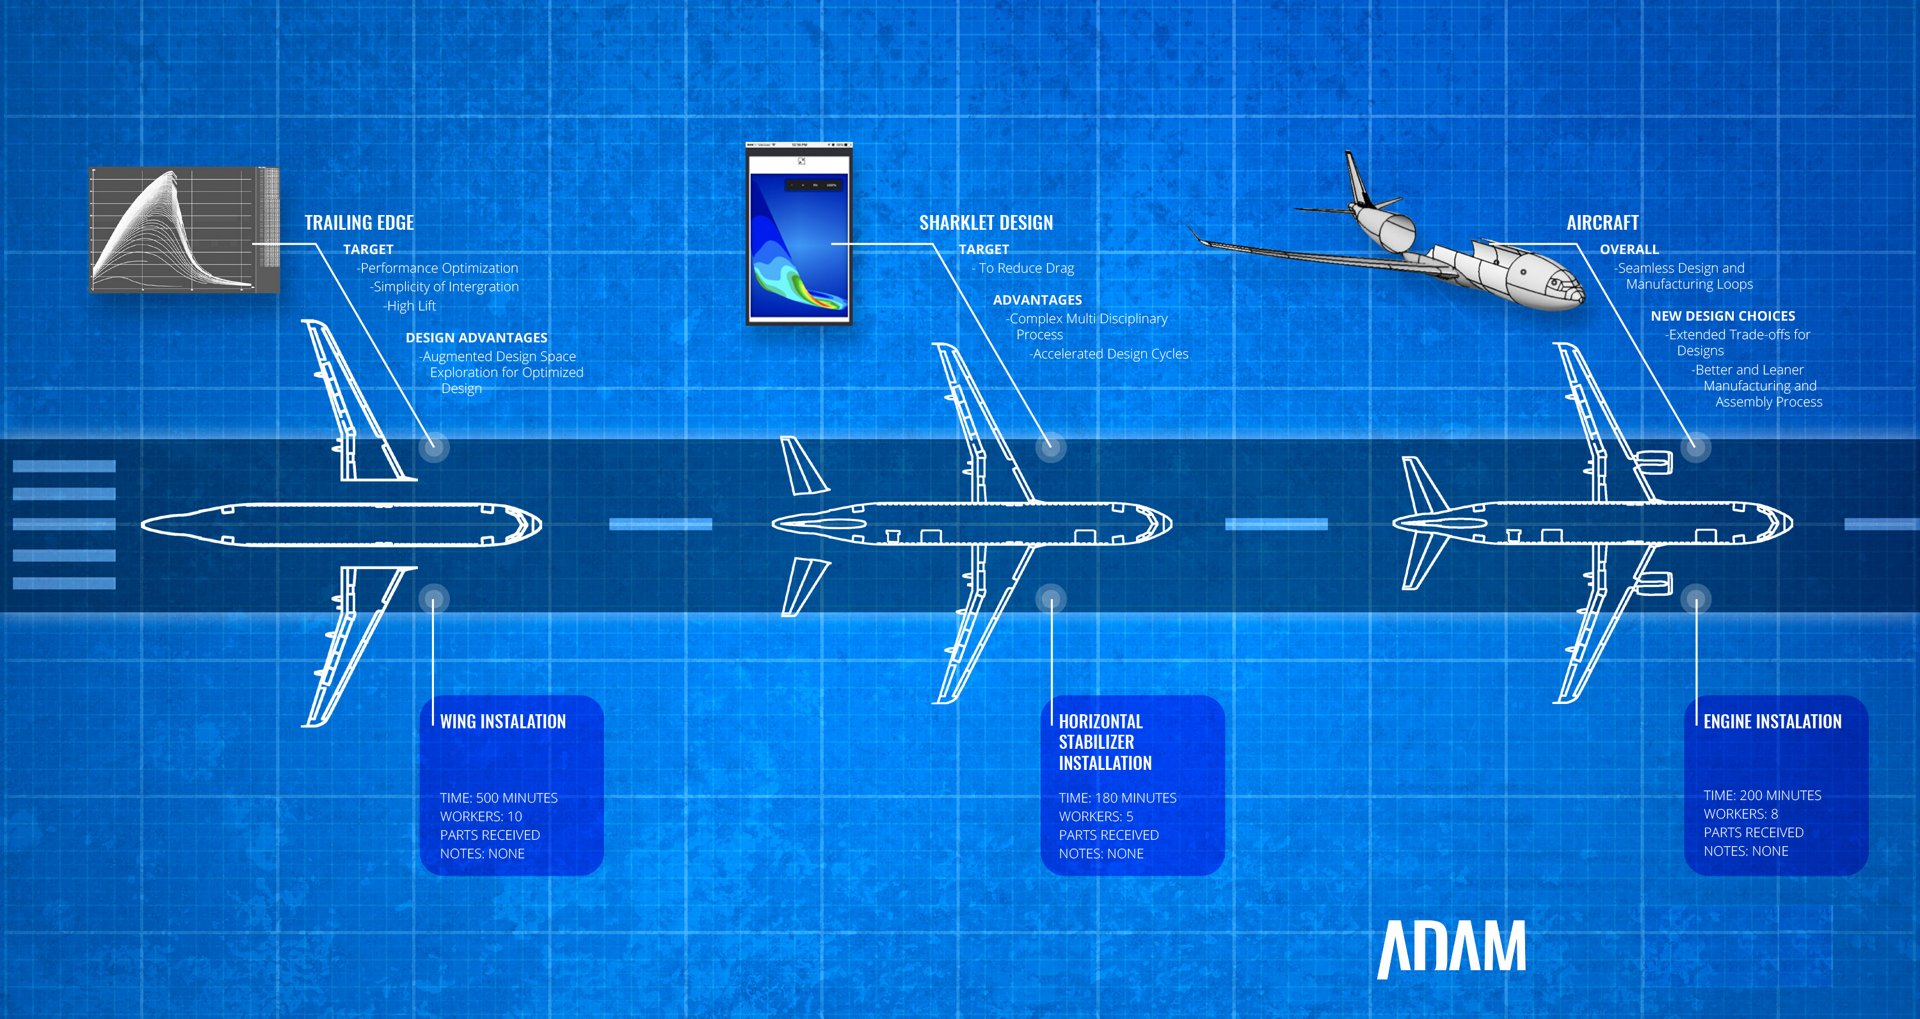 A diagram highlighting Airbus' Advanced Digital Design and Manufacturing (ADAM) capabilities.